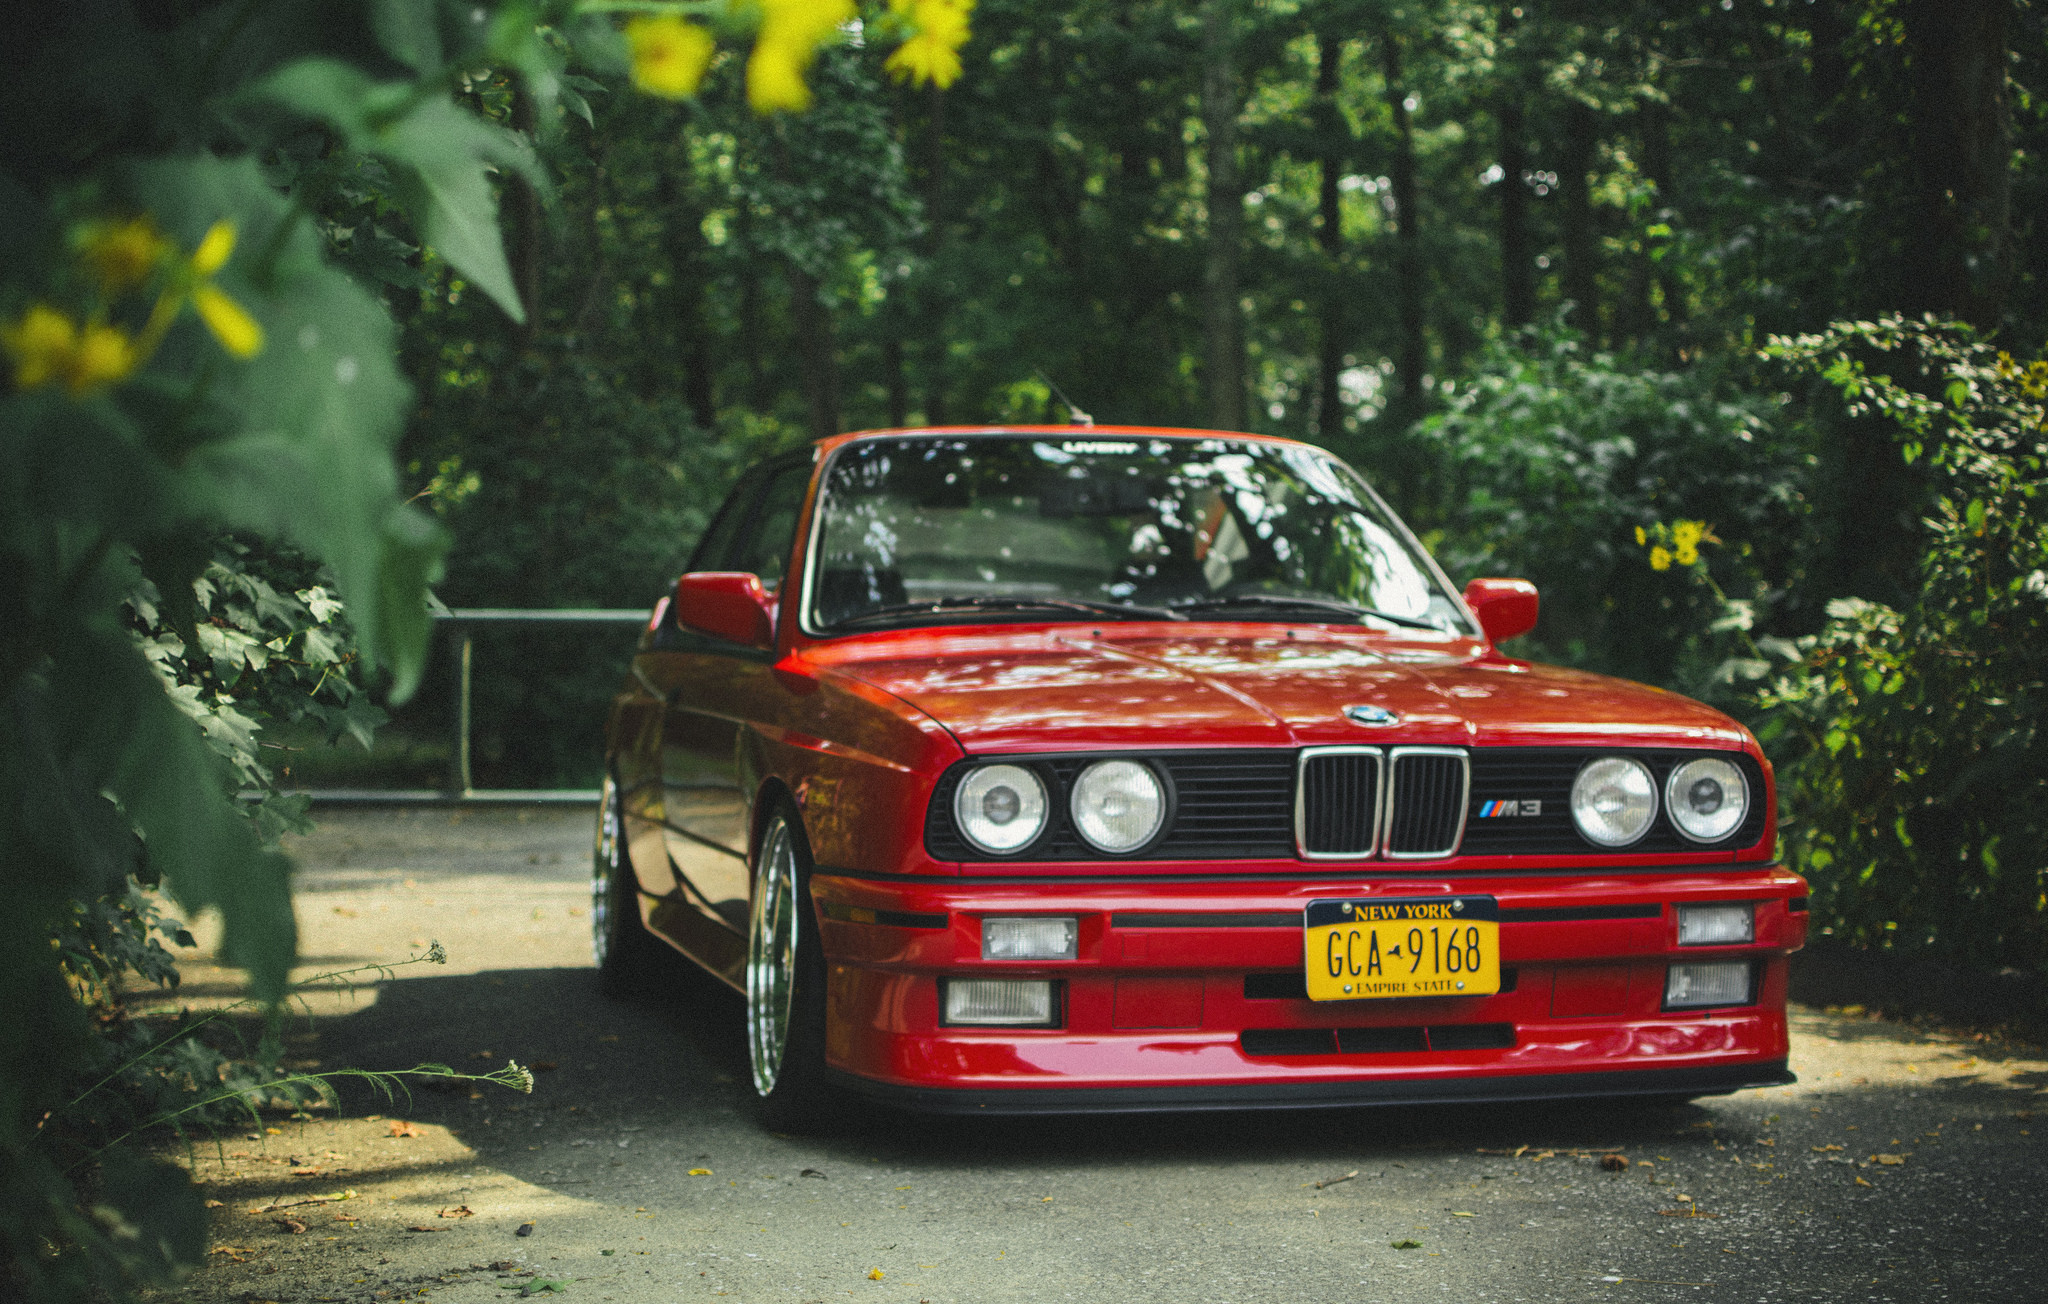 Bmw, e30, m3, red, tuning, bmw, m3, red,